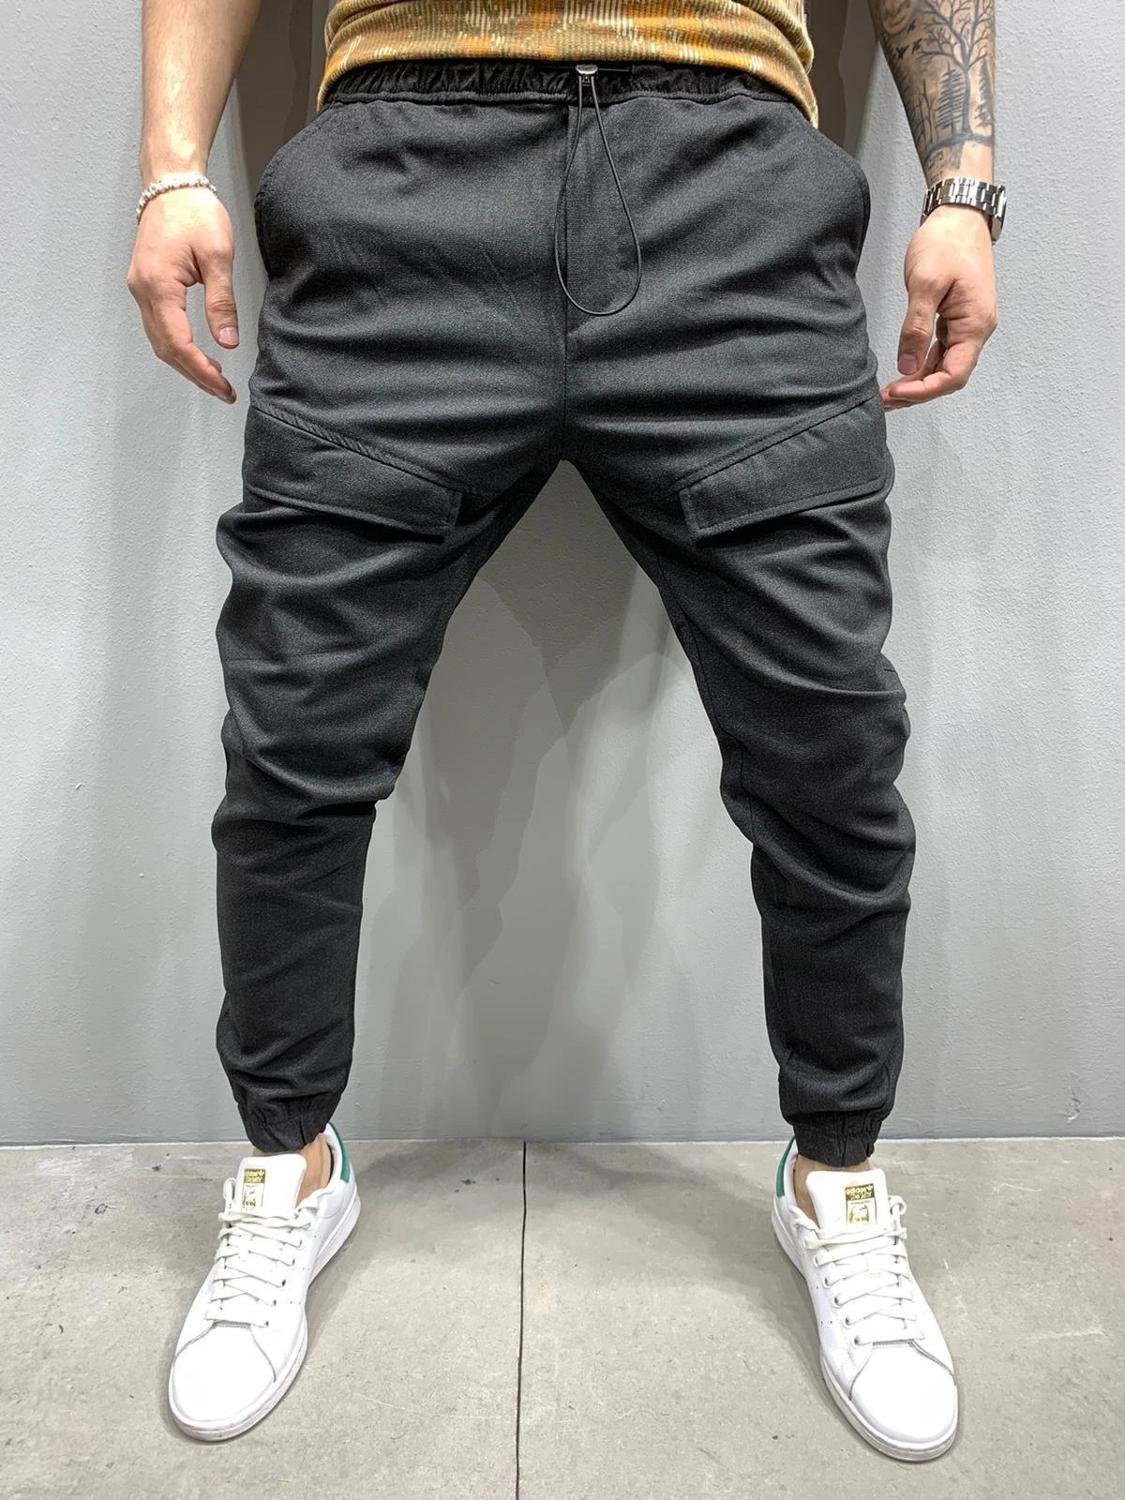 Men's Tethered Placket Suits Pants Tethered To A Solid Color Hip-hop Jogger Casual Pants Man